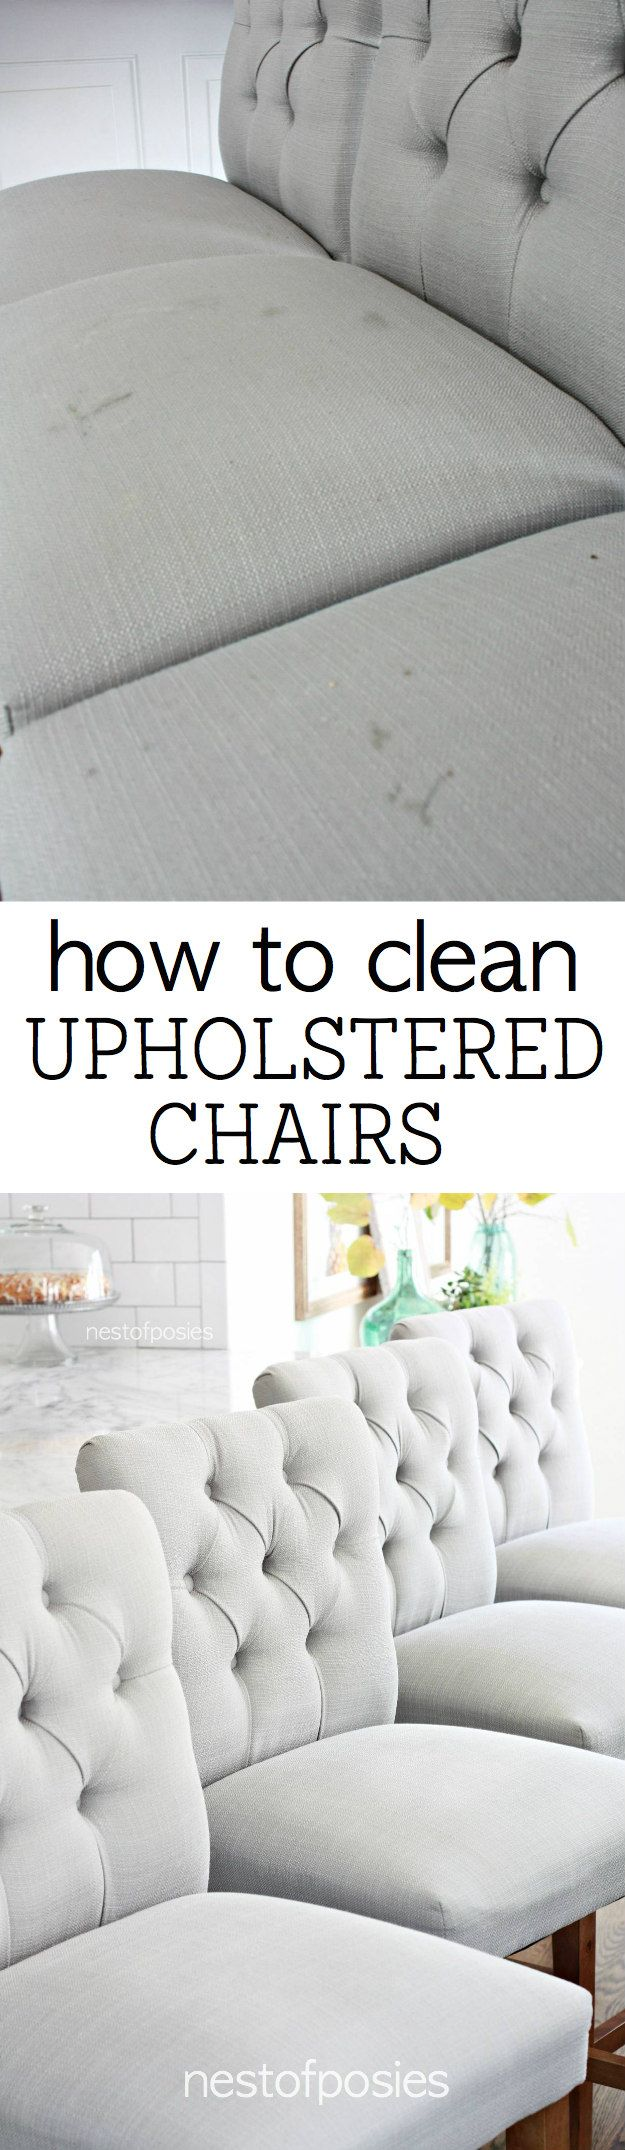 How To Clean Upholstered Chairs Best Of Pinterest